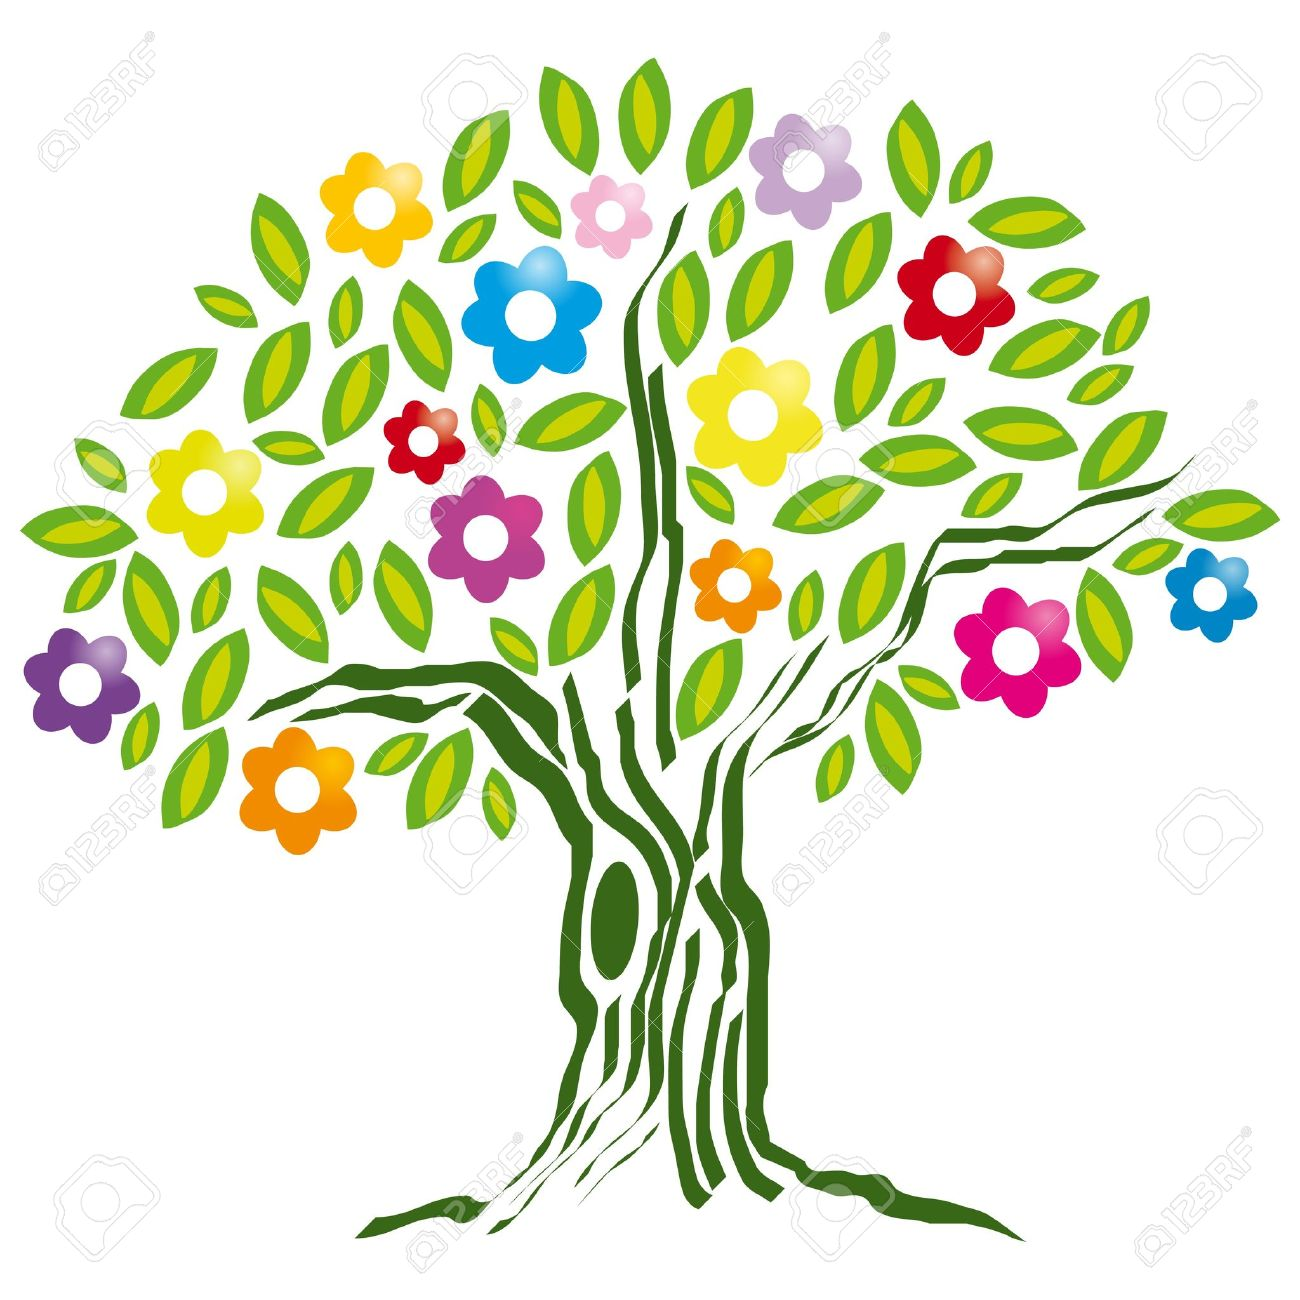 Clipart trees and flowers banner stock Clipart trees and flowers - ClipartFest banner stock